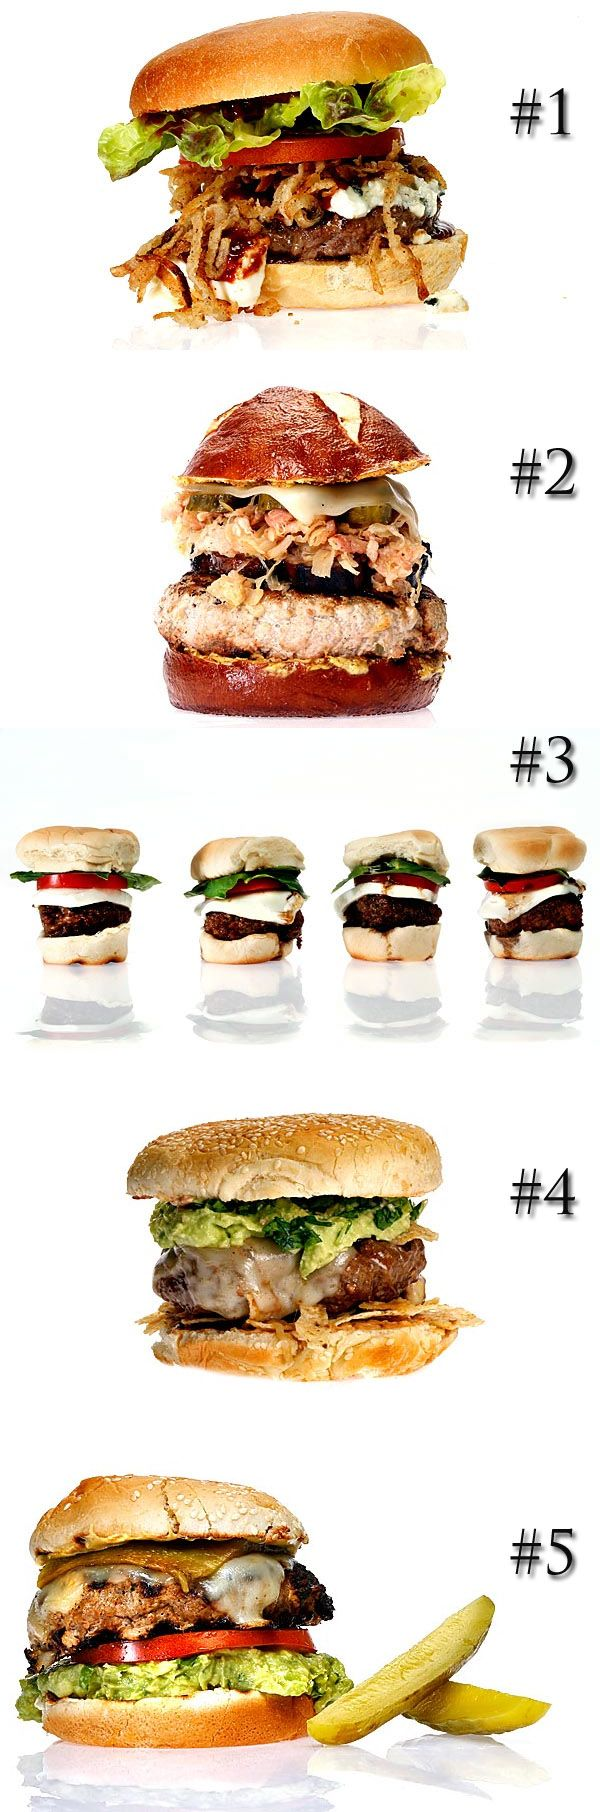 ... Burgers & Sliders on Pinterest | Burgers, Sliders and Burger Recipes